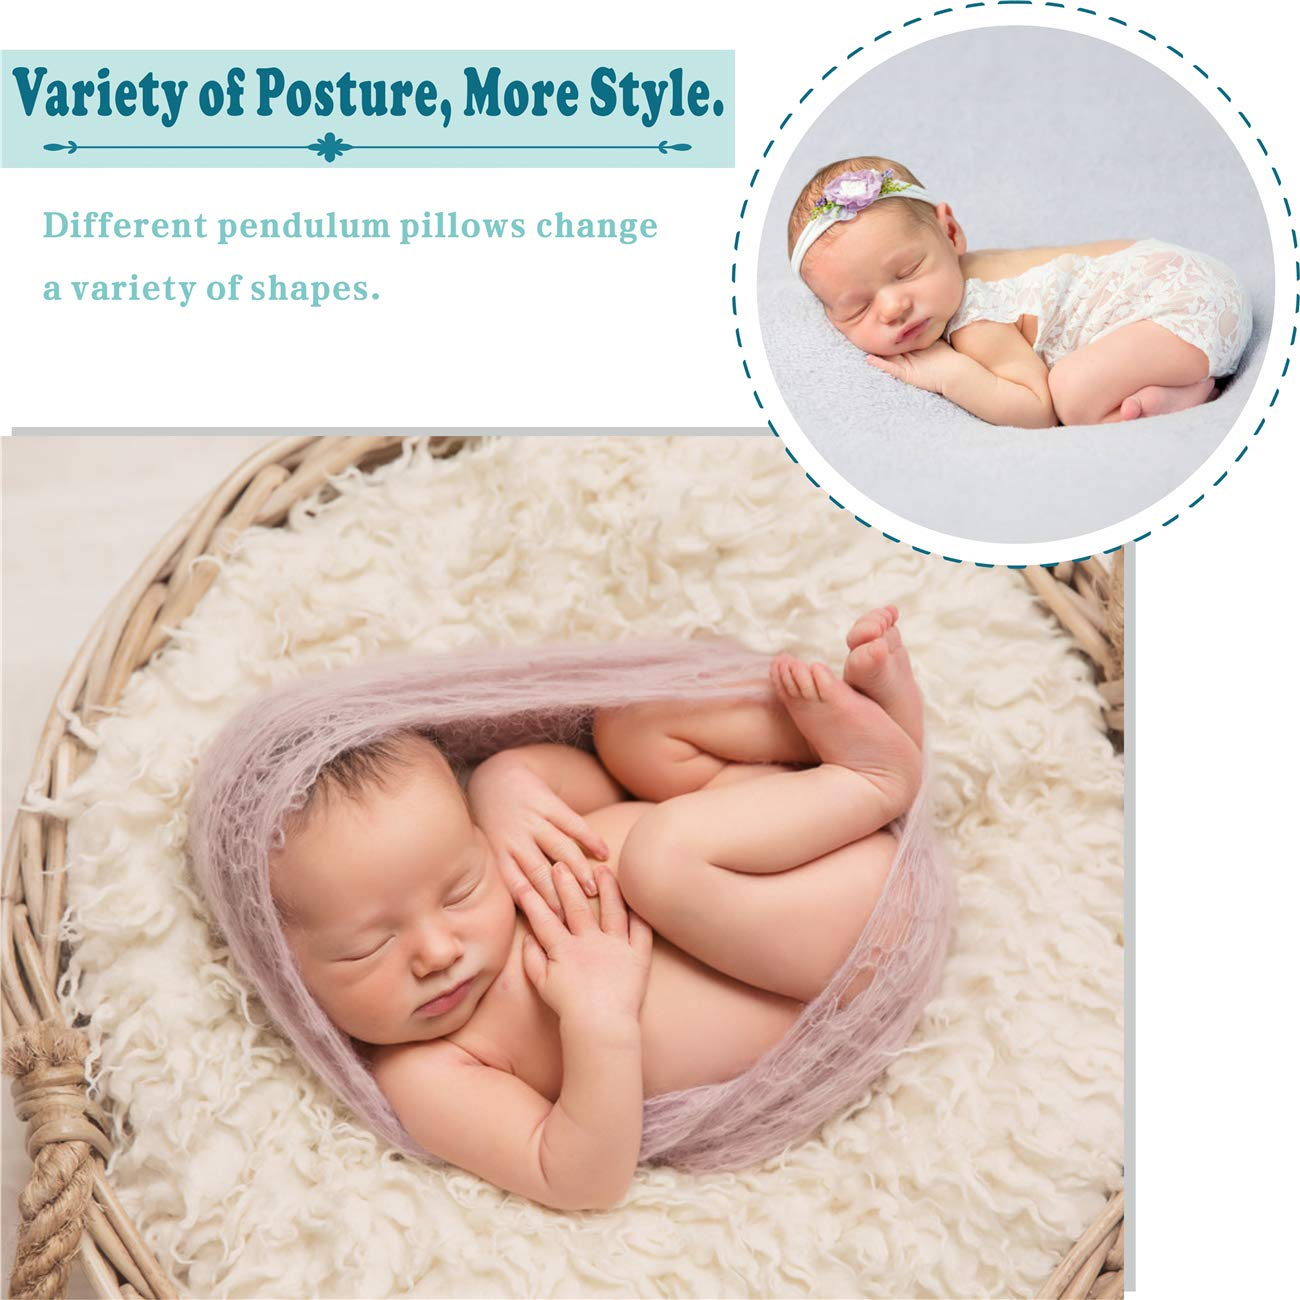 Large Size Baby Photo Props | M/&G House Newborn Photography Props Free 12 PCS Baby Month Sticker Fits 0-6 Months 4 PCS Ultra-Soft Baby Donut Posing Pillow Infant Posing Props for Boy or Girl